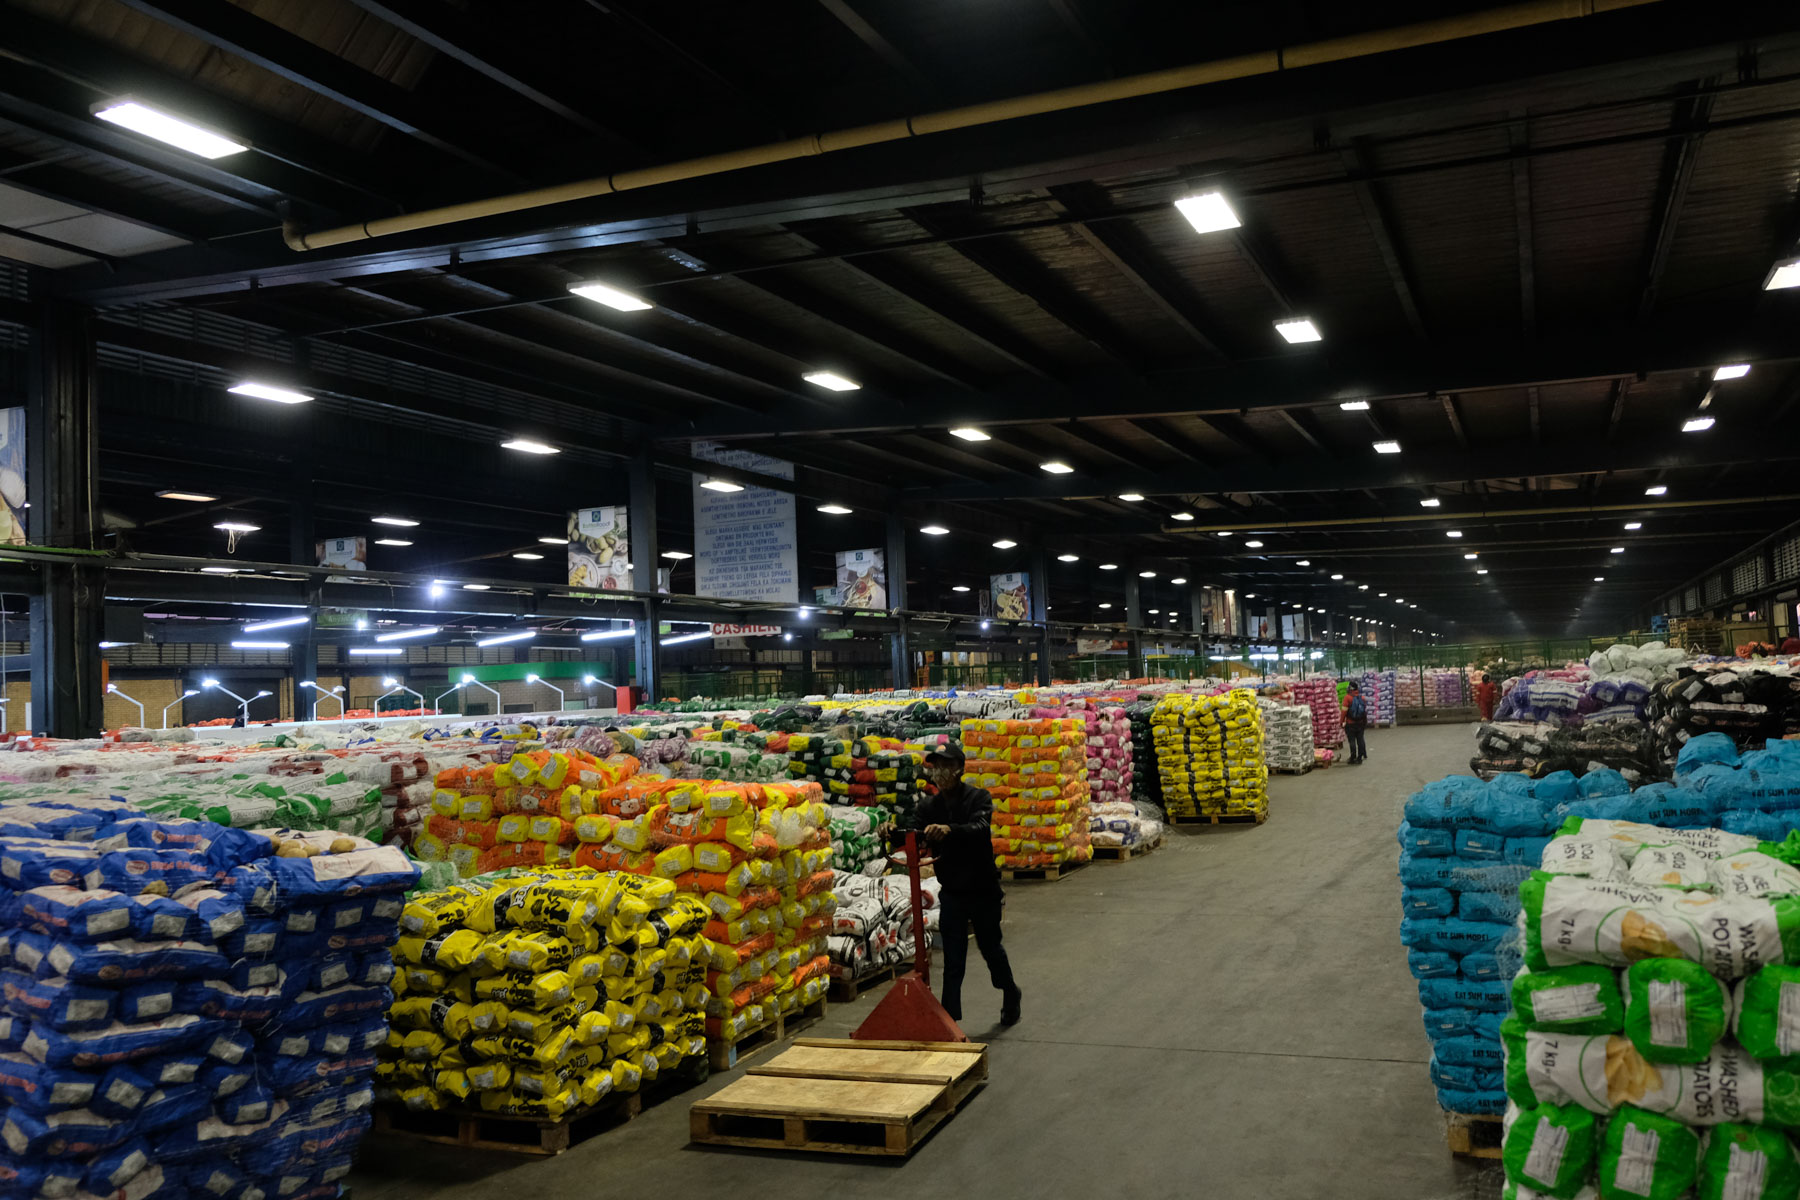 8 May 2020: Avenues of potatoes at the City Deep market. One in three potatoes in South Africa is sold by a street trader.